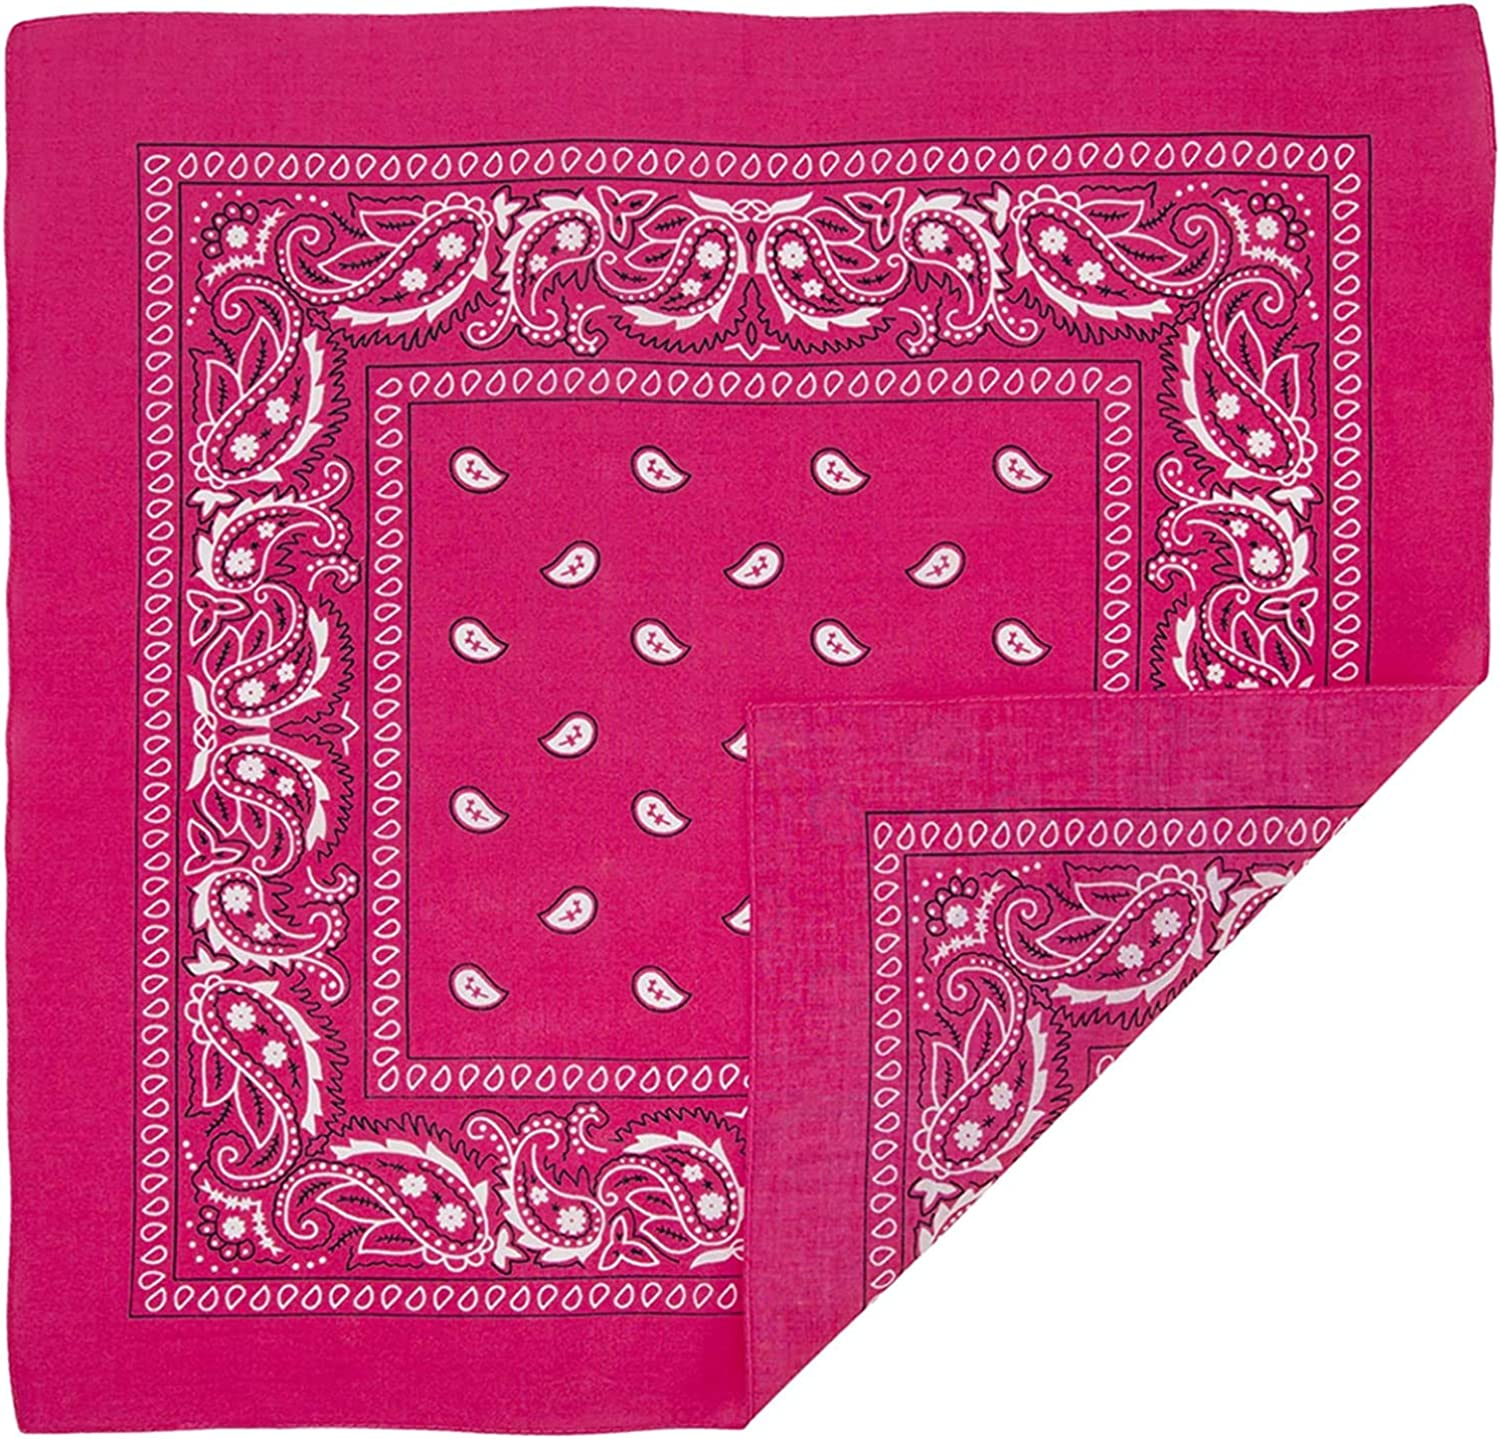 Bandanas 12 Pack 100/% Cotton Headband Paisley Print Cowboy Head Wrap Scarf For Men Women Pets